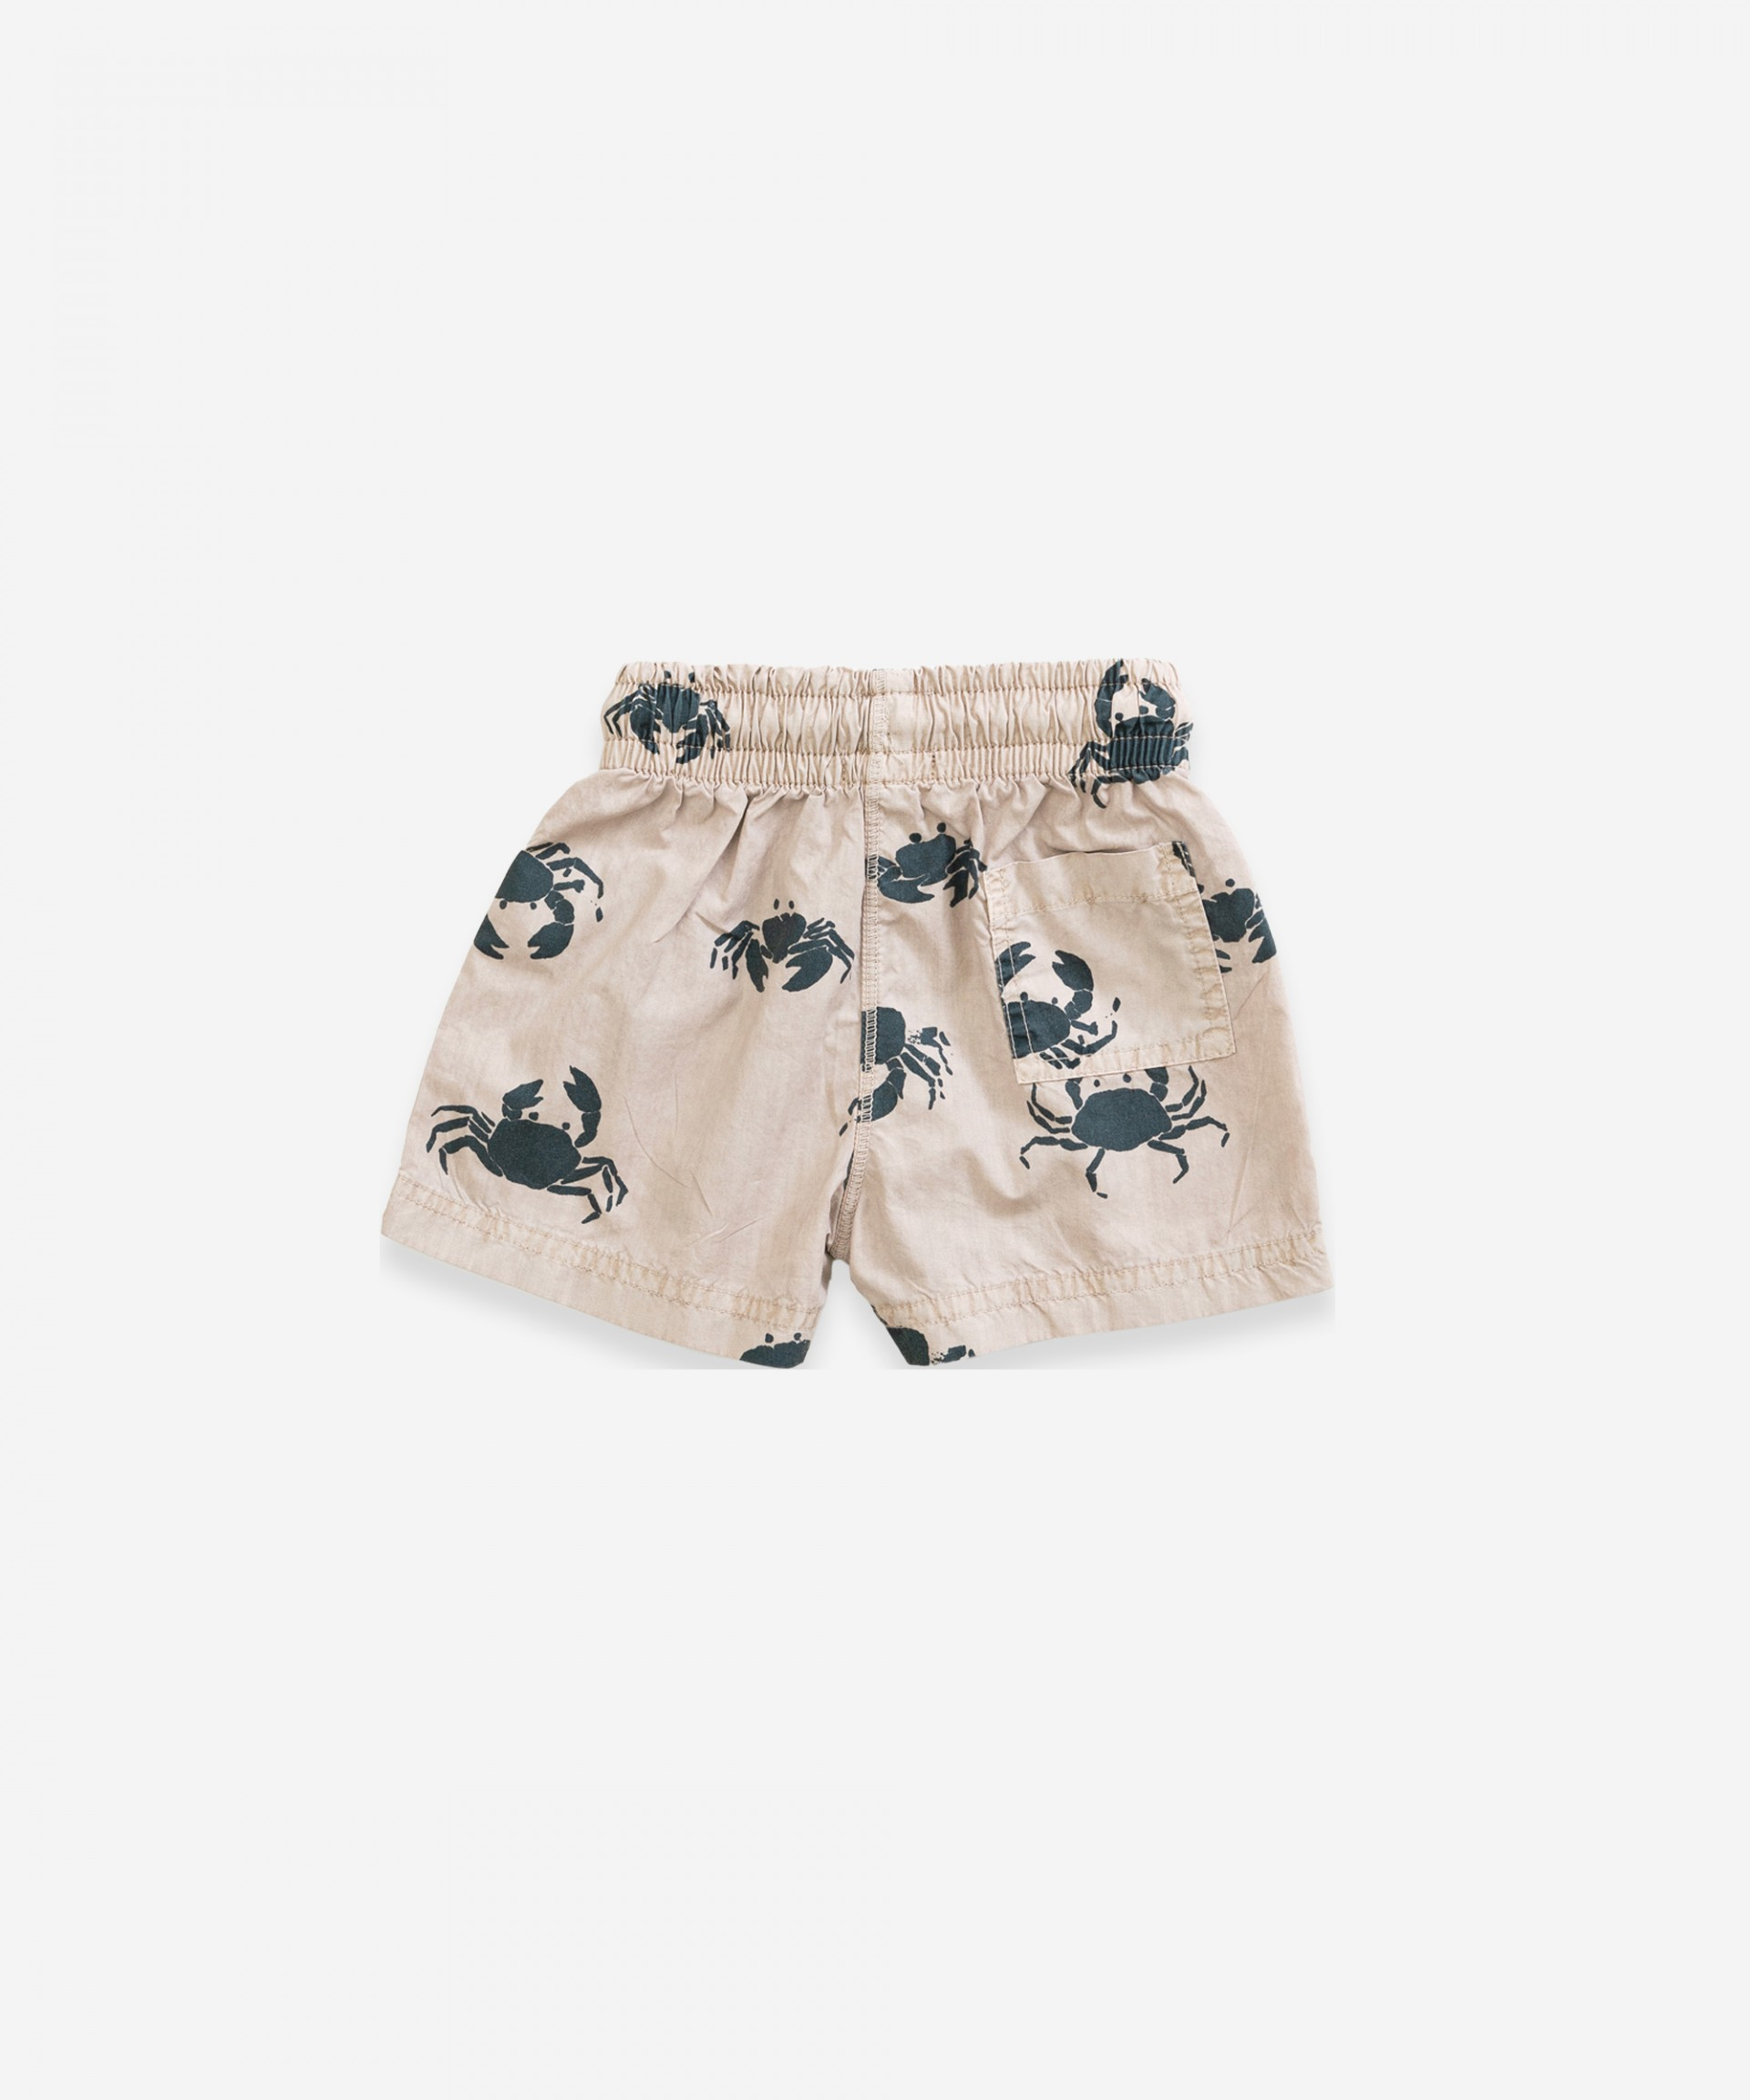 Swimming shorts with crab print | Weaving